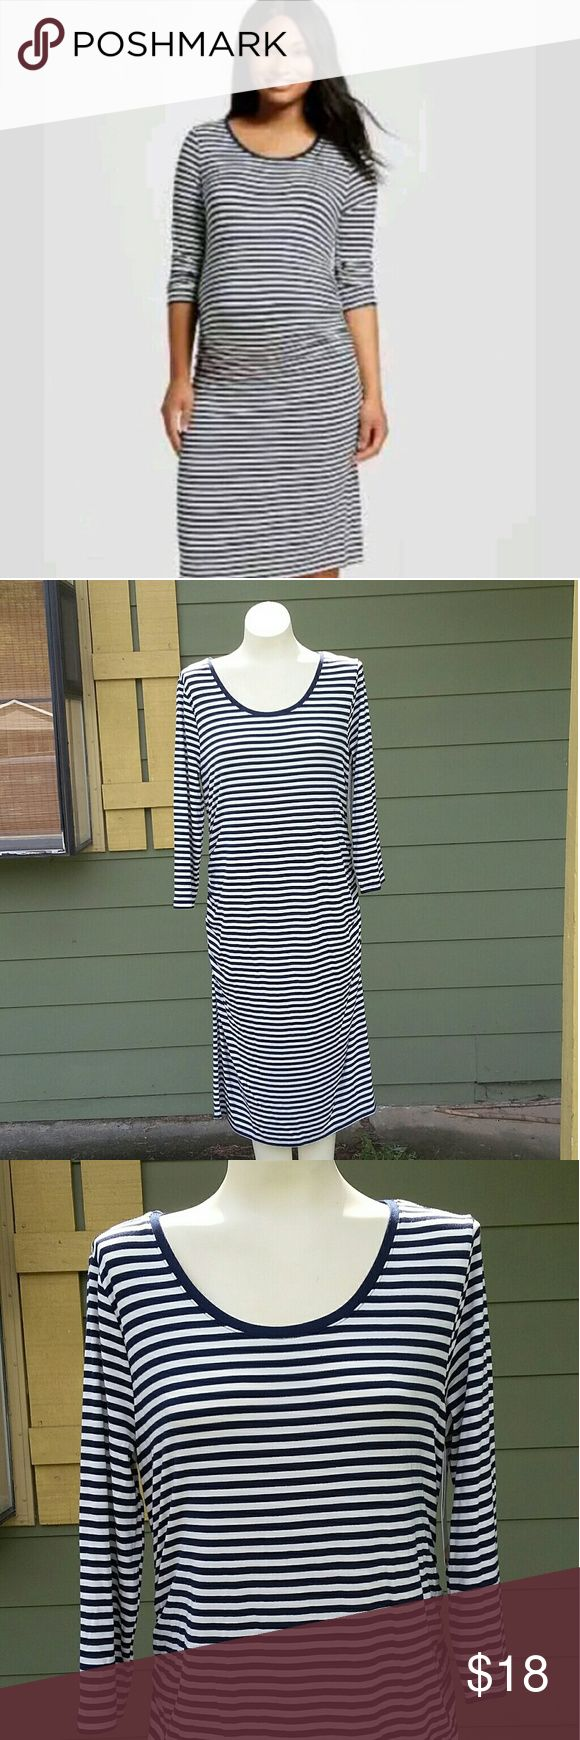 Navy & Cream Maternity Dress NWT ~ Navy & Cream striped maternity dress Liz Lange for Target Dresses Midi